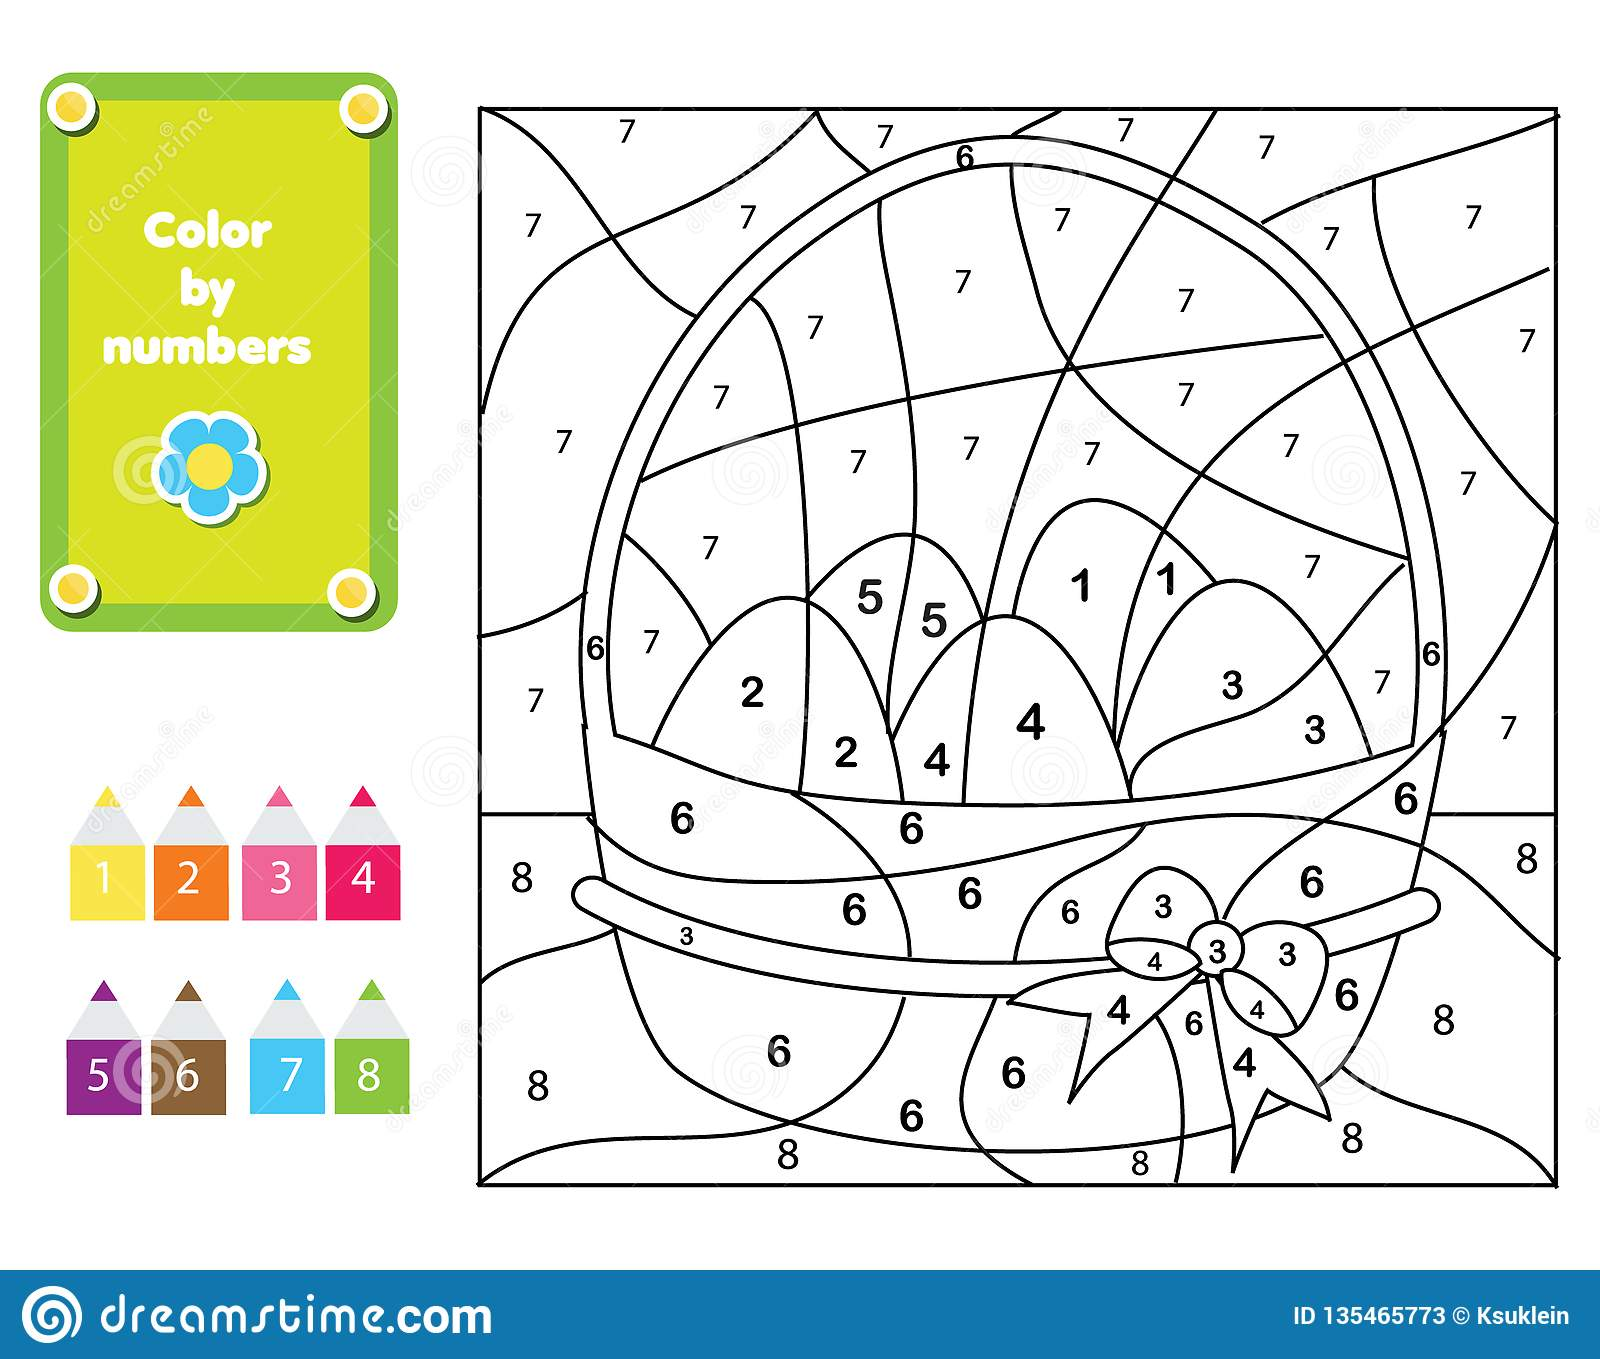 Coloring Page For Kids Educational Children Game Color By Numbers Easter Eggs Stock Vector Illustration Of Easter Contour 135465773